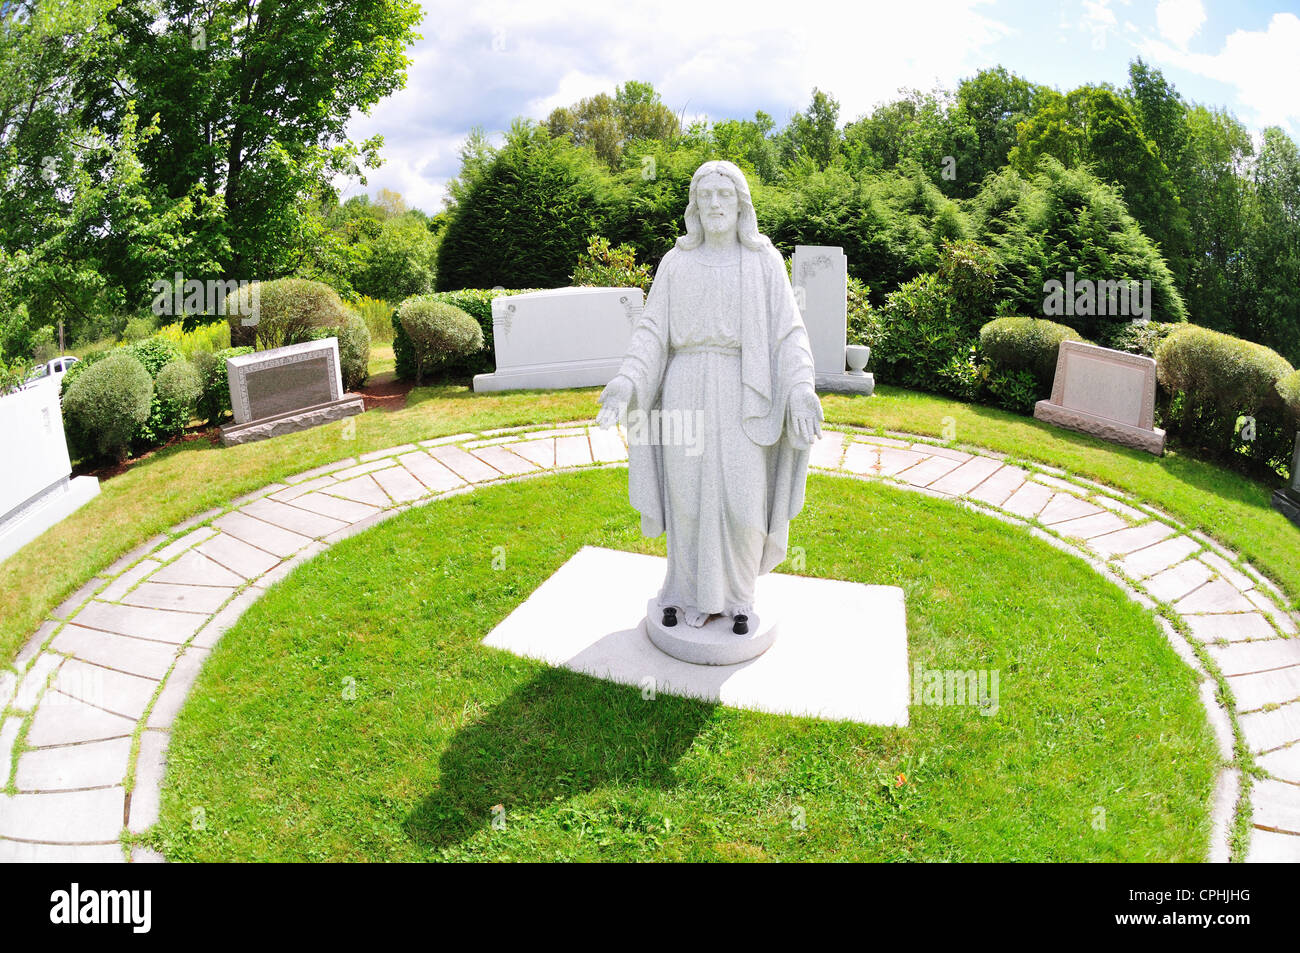 Display of statuary and monuments at Rock of Ages, Barre, Vermont - Stock Image